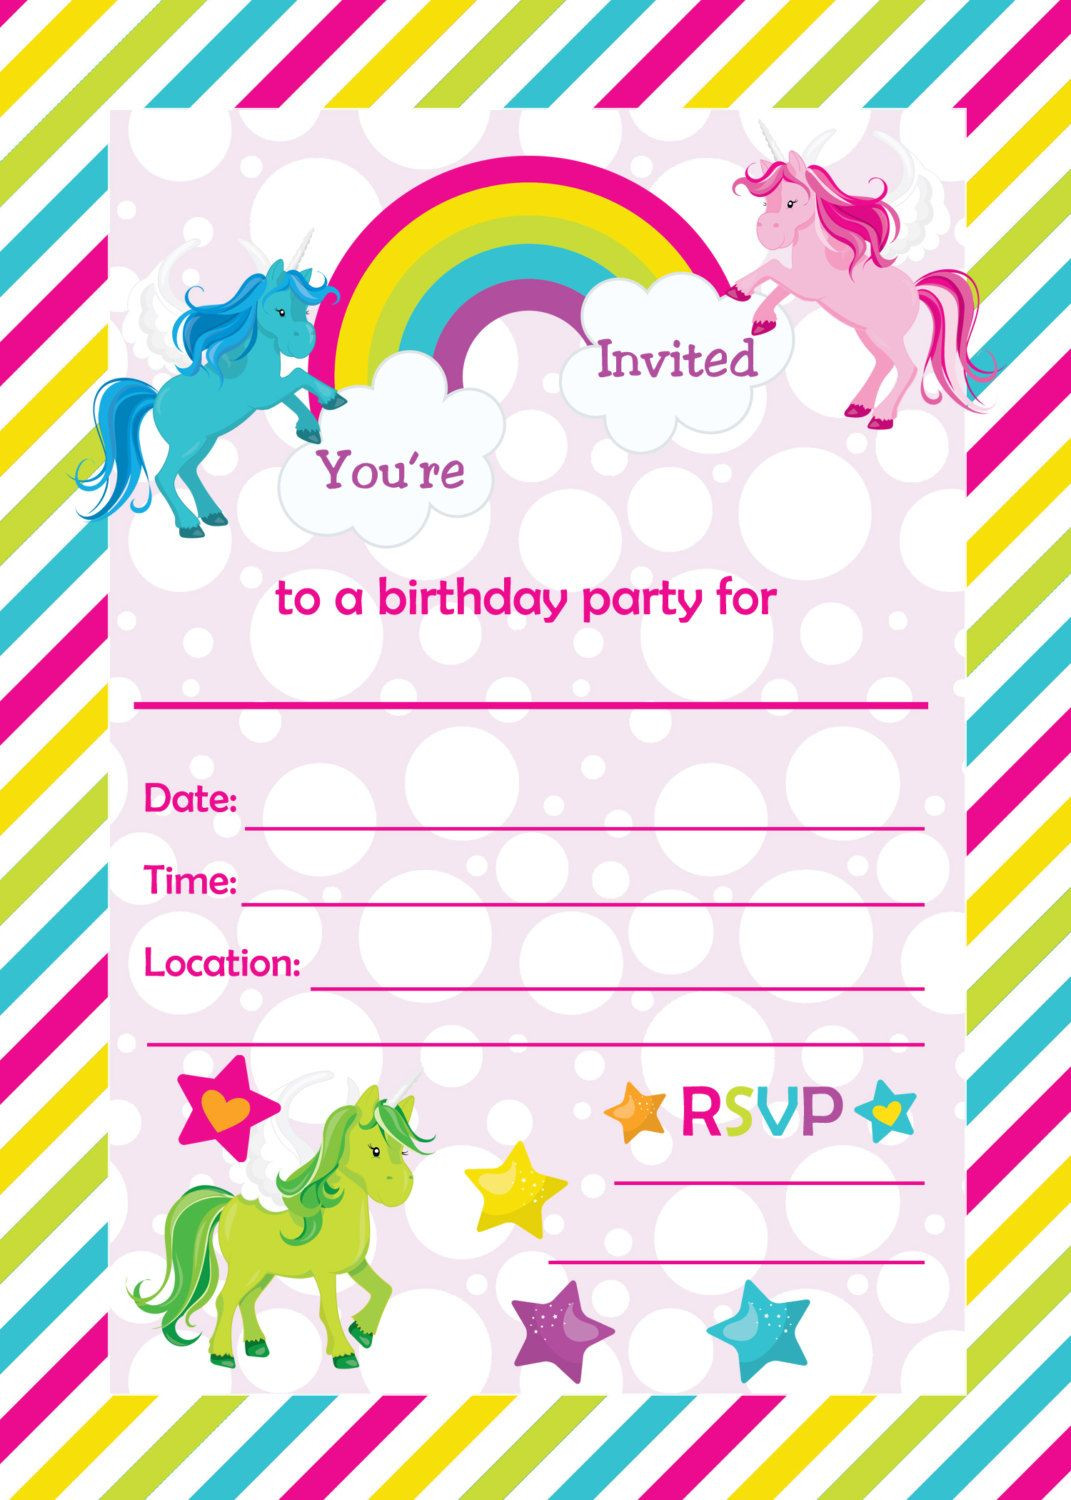 Best ideas about Printable Birthday Invitations . Save or Pin Fill In Birthday Party Invitations Printable Rainbows and Now.